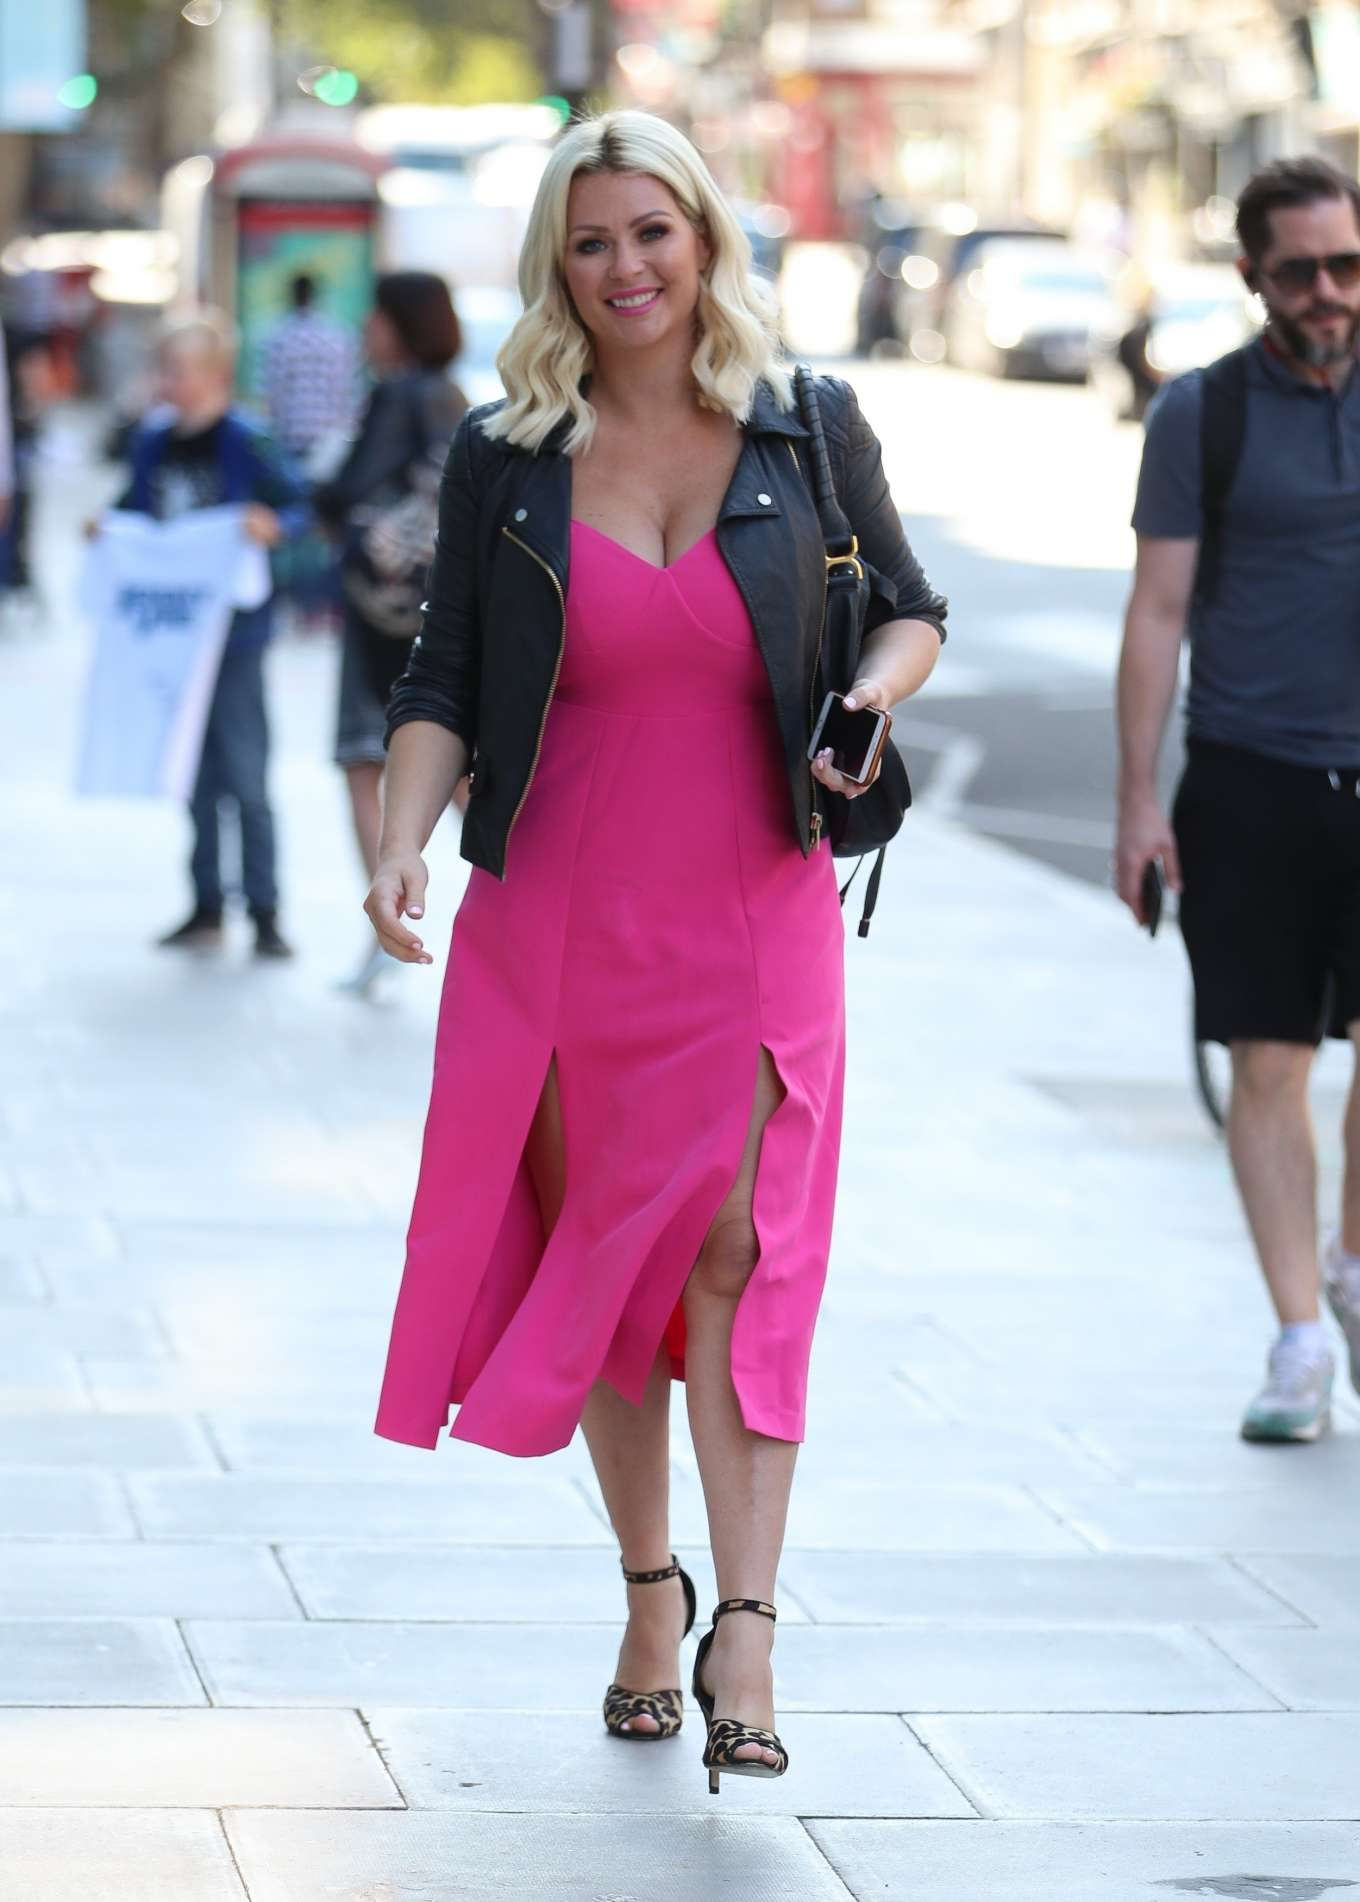 Nicola Mclean - In flirty pink dress exits Jeremy Vine show in London